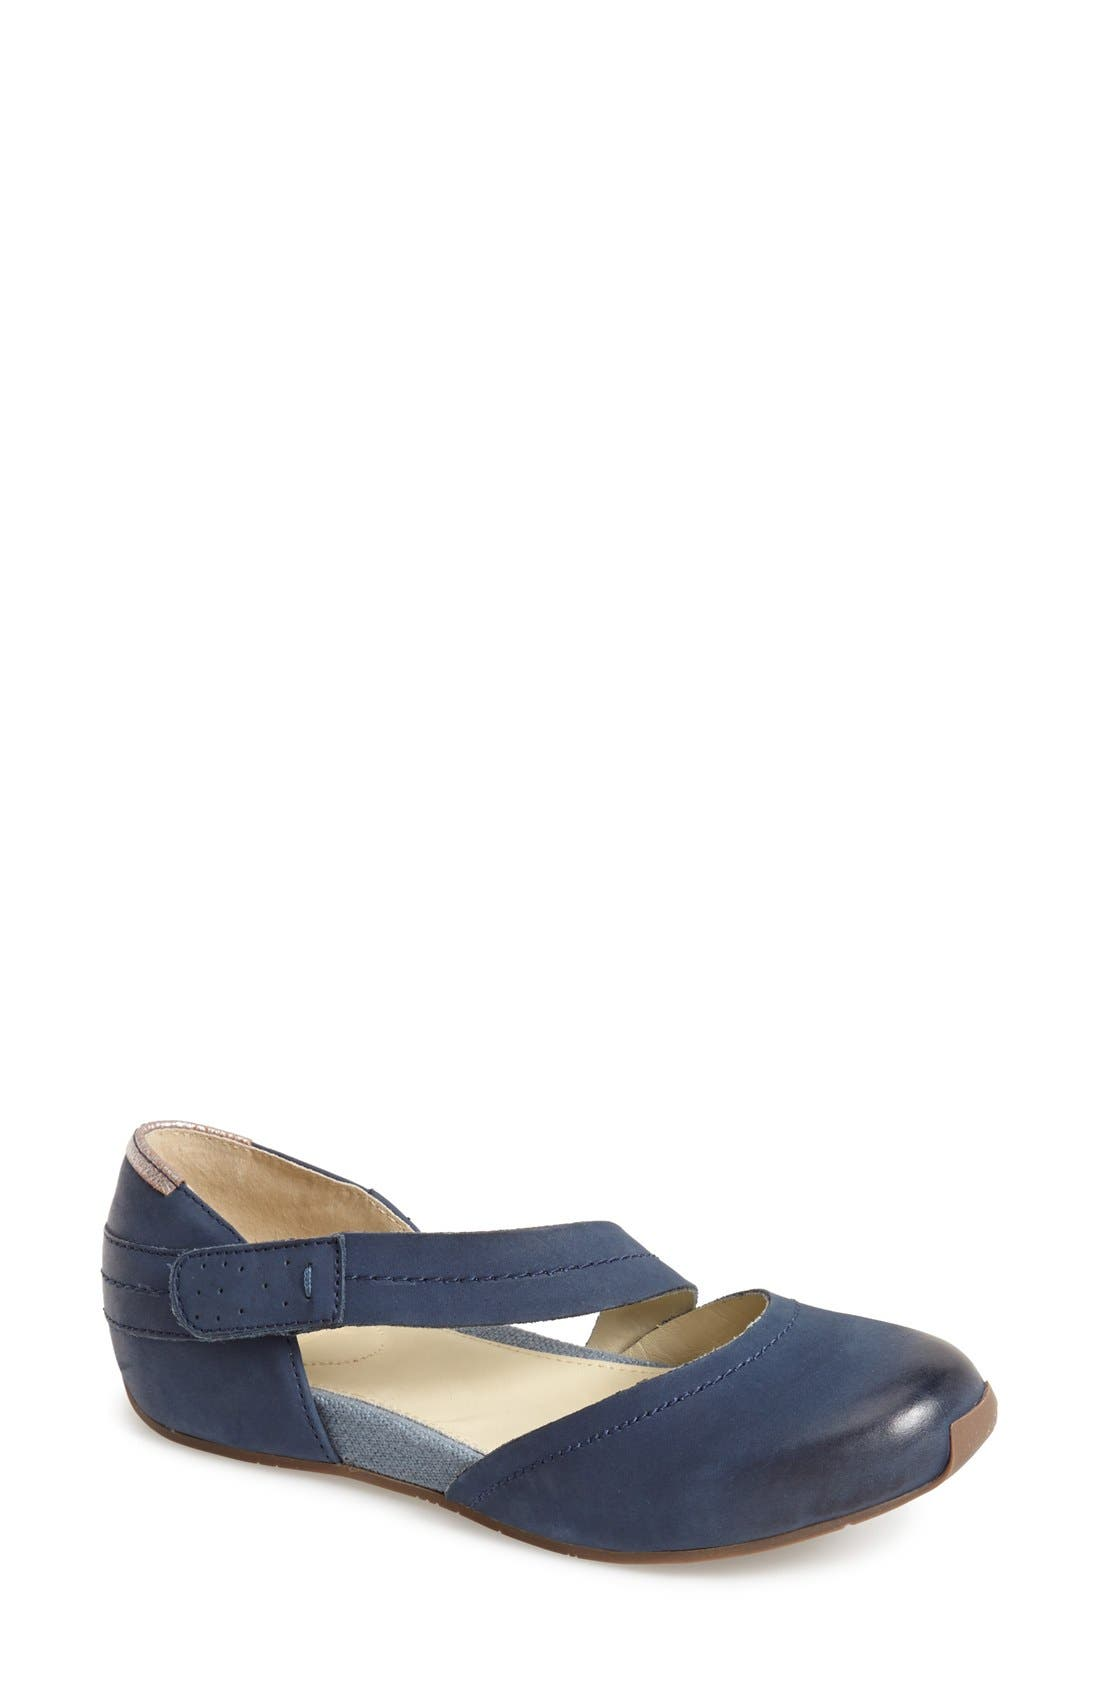 20182017 Flats OTBT Womens Pacific City Mary Jane Flat Outlet Online Shop